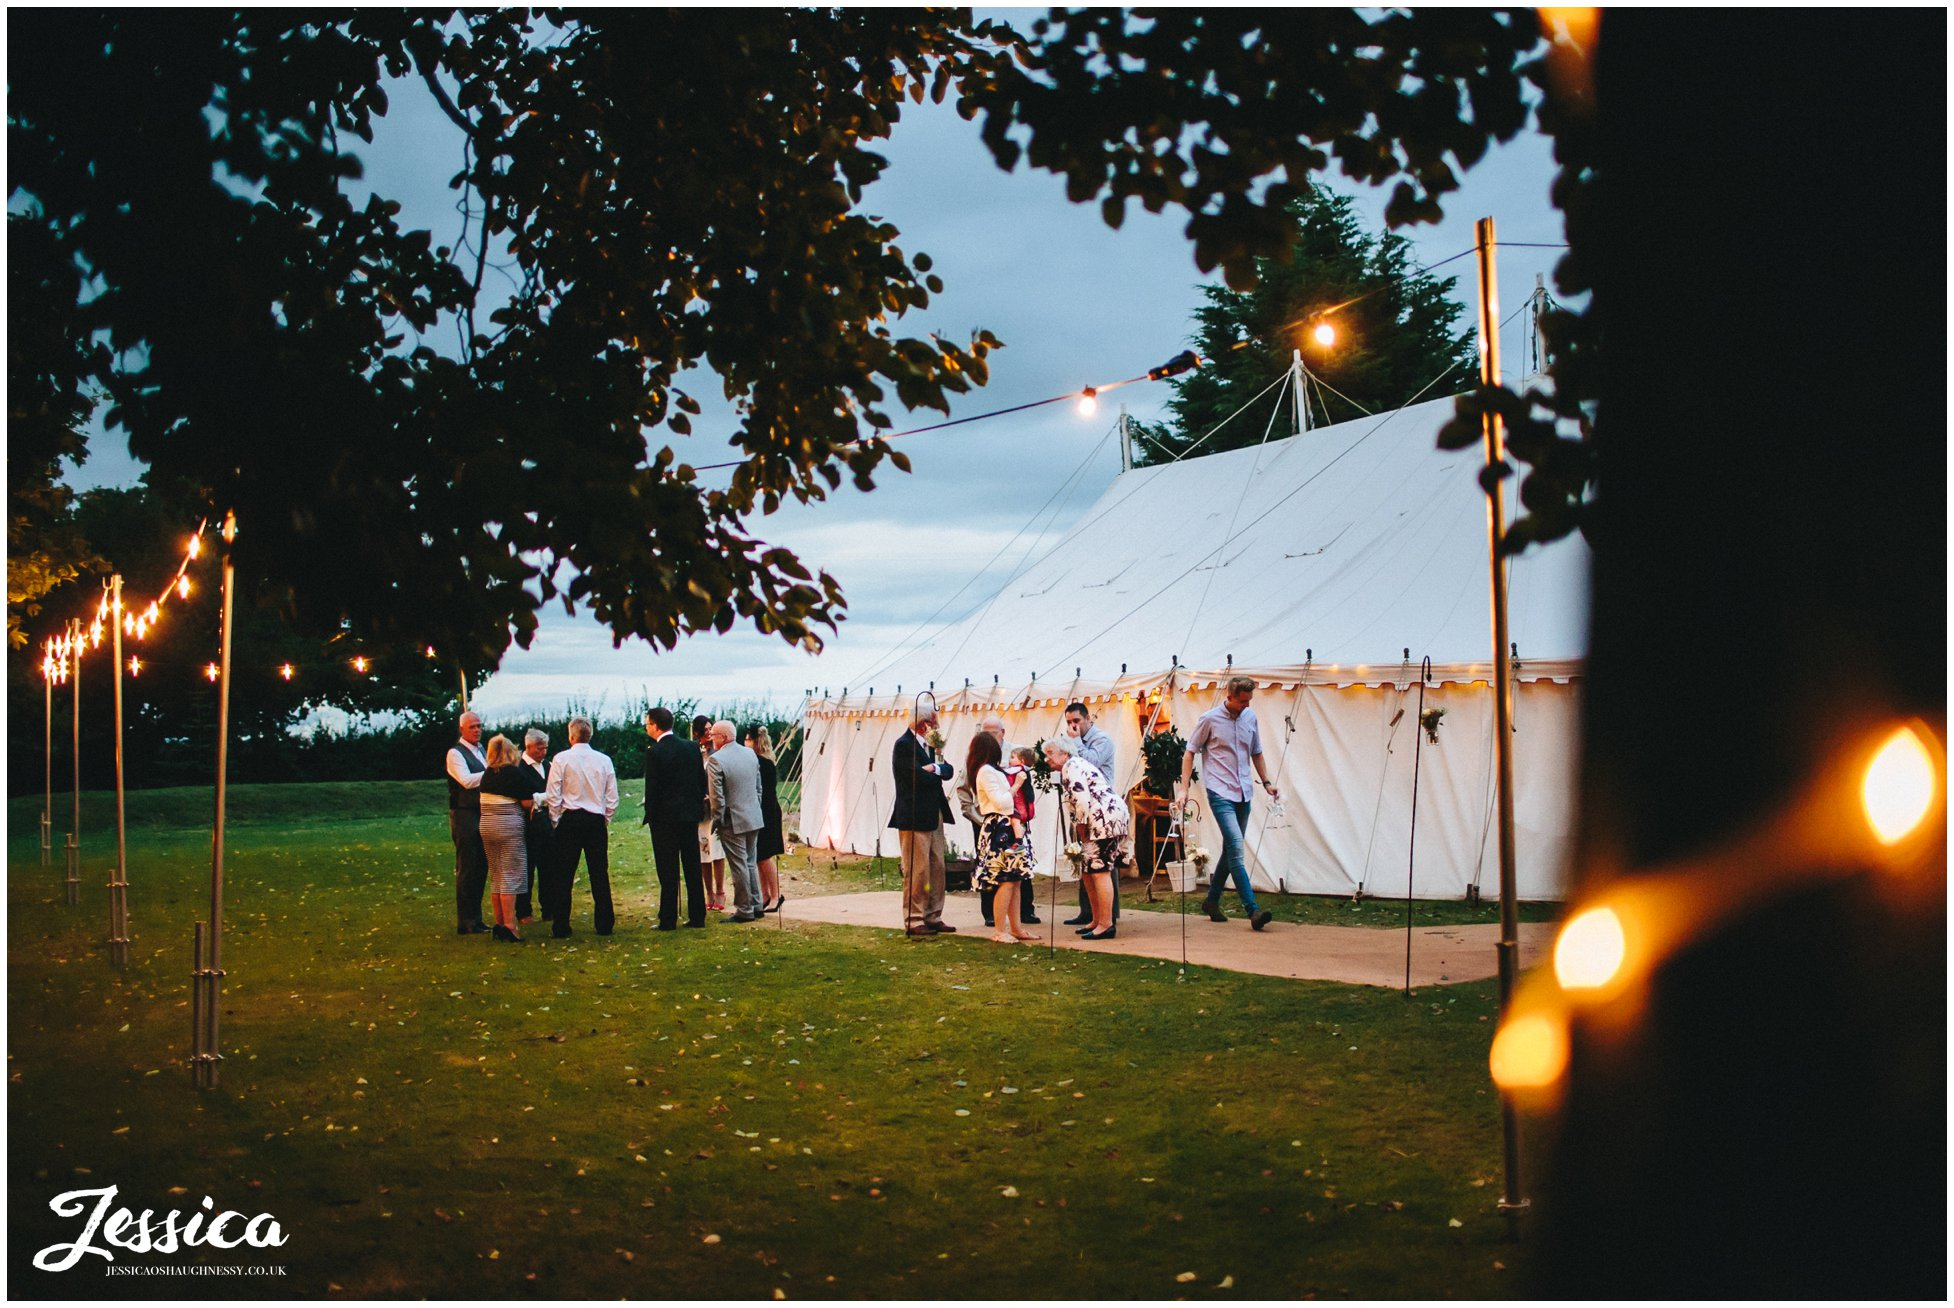 cholmondeley arms wedding marquee lit by fairy lights at night